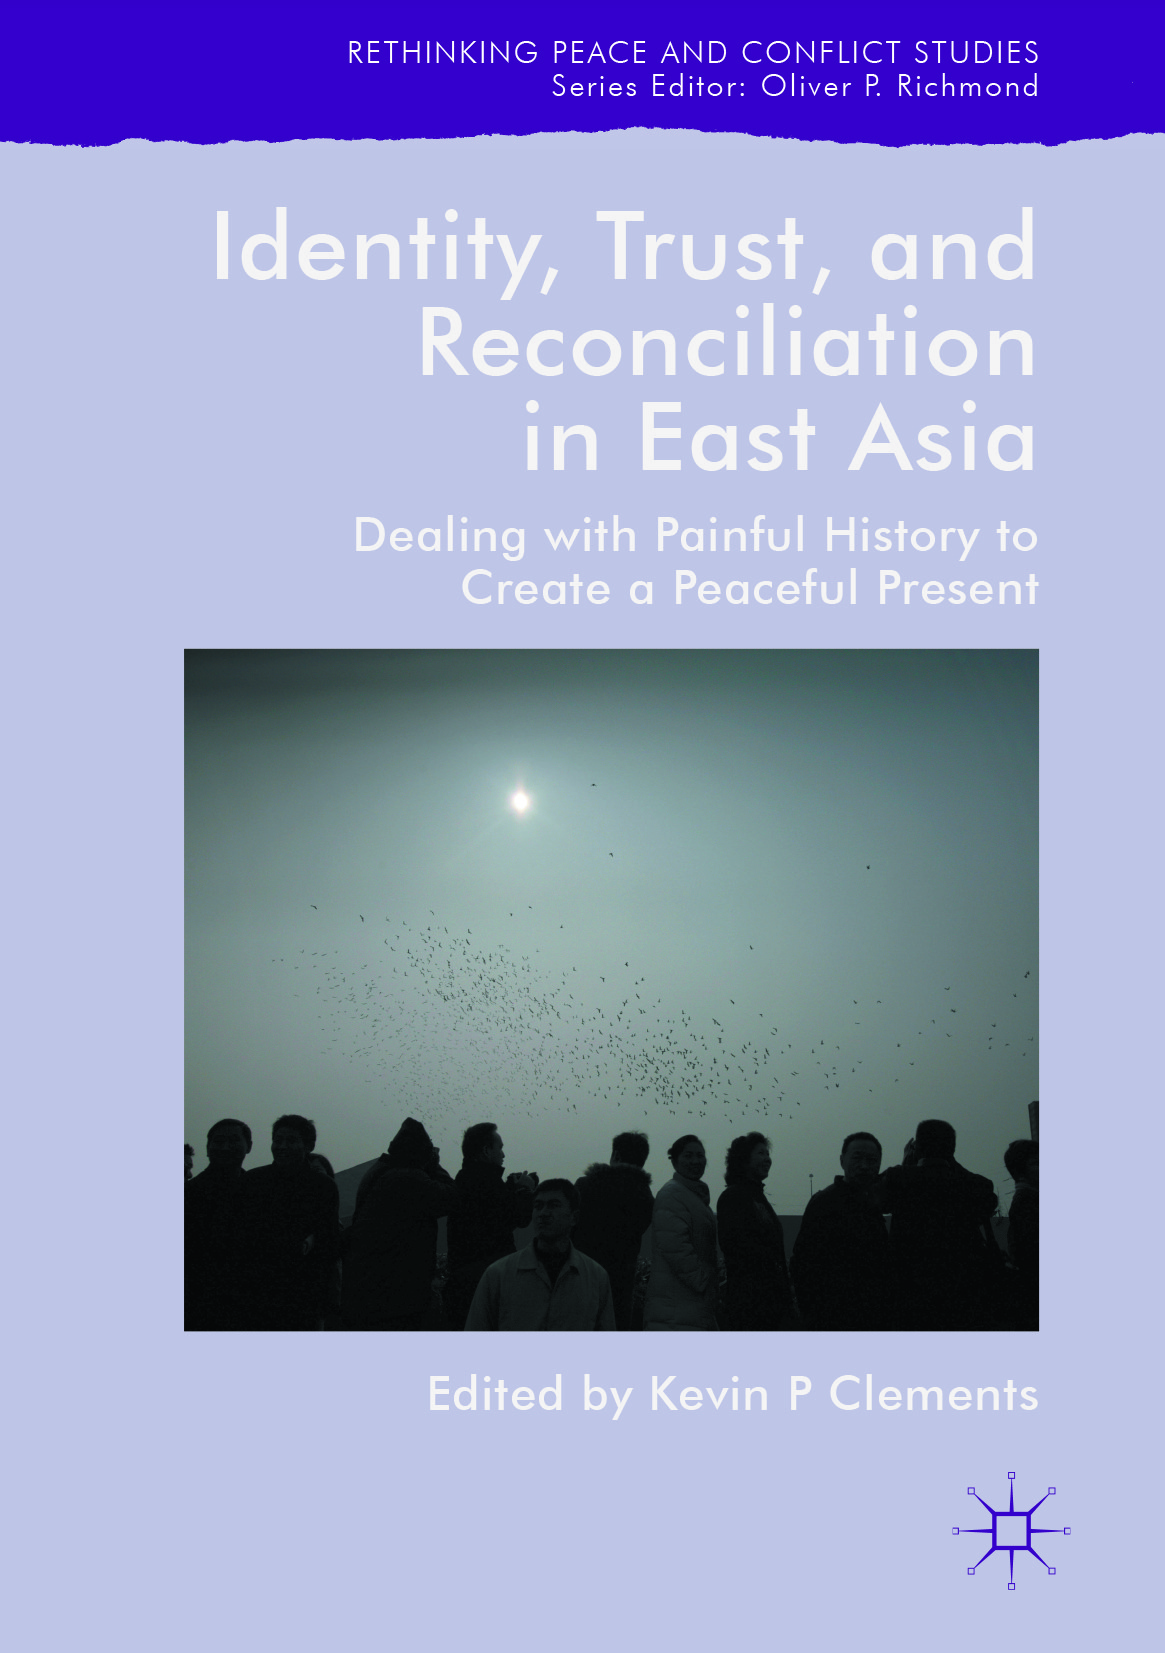 Clements, Kevin P - Identity, Trust, and Reconciliation in East Asia, e-bok